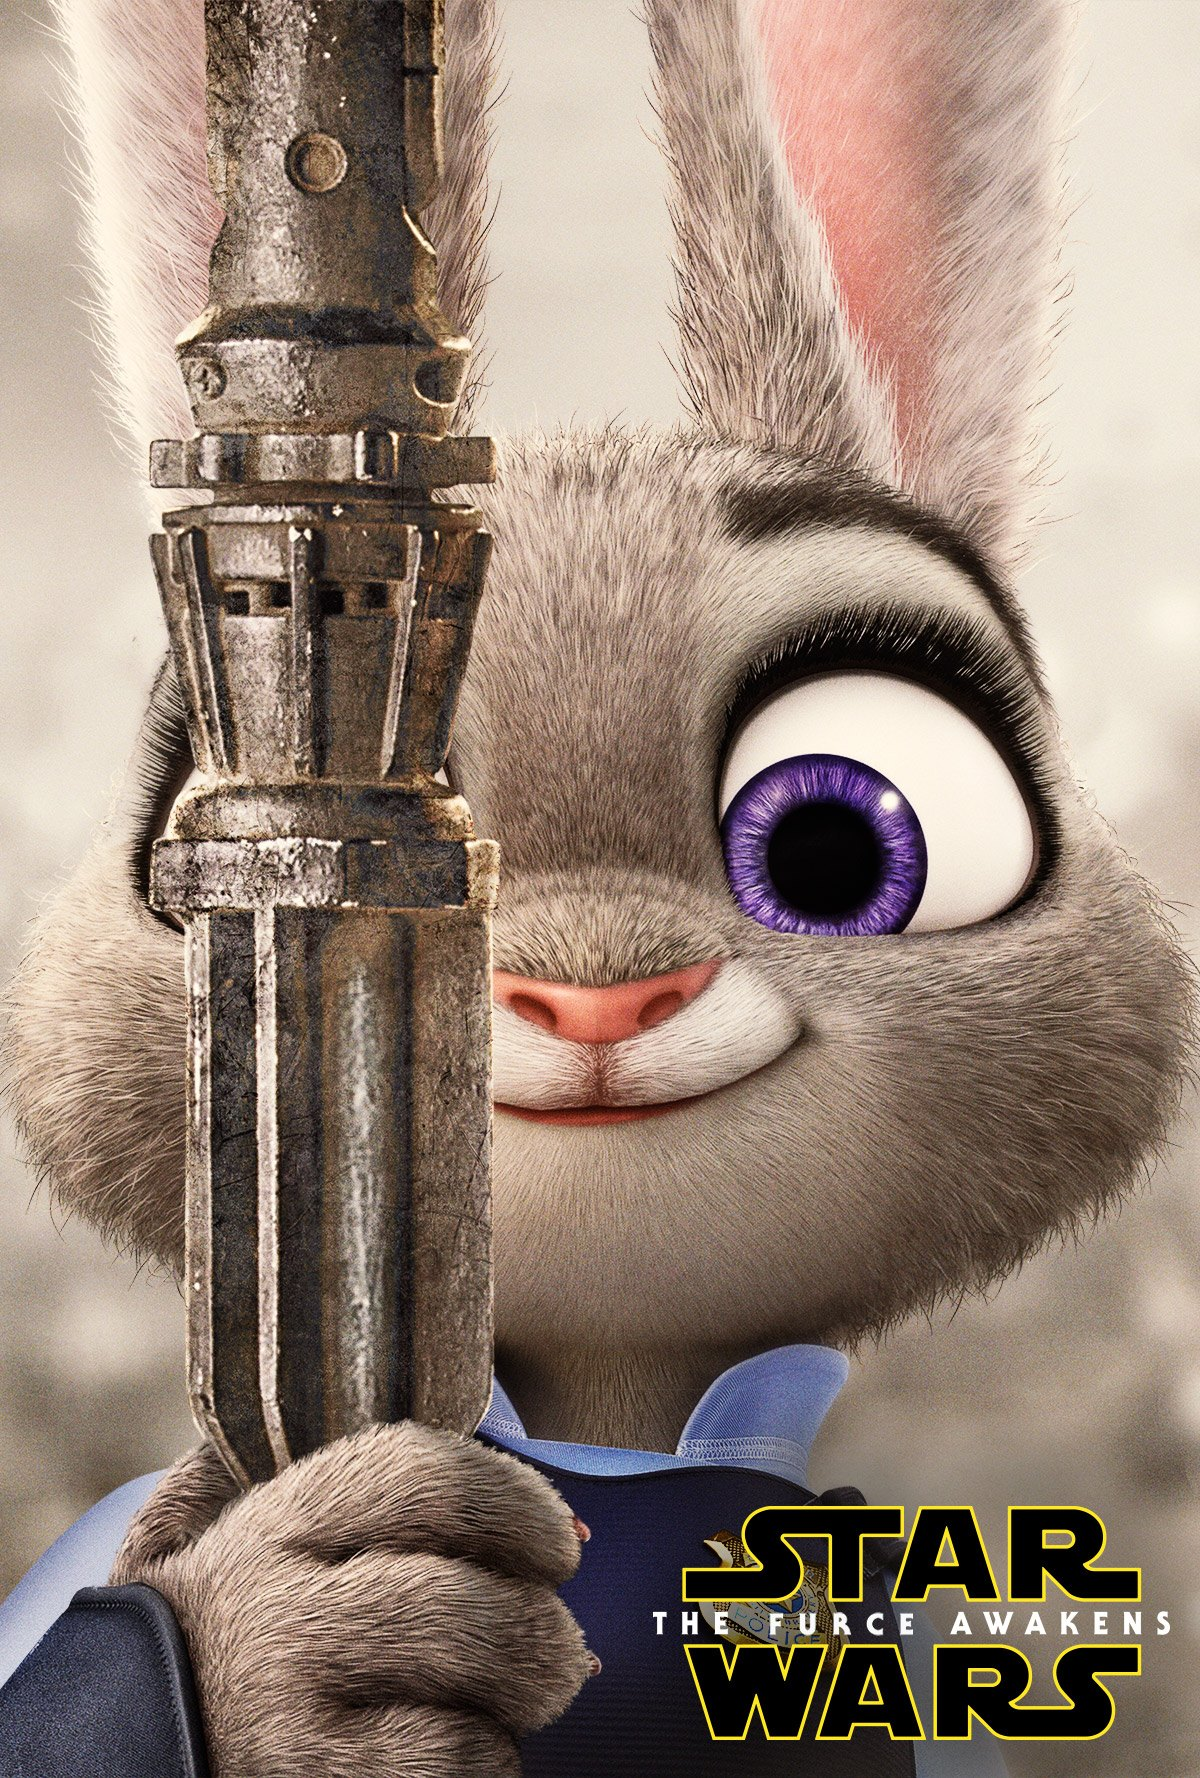 zootopia spoof movie poster 1